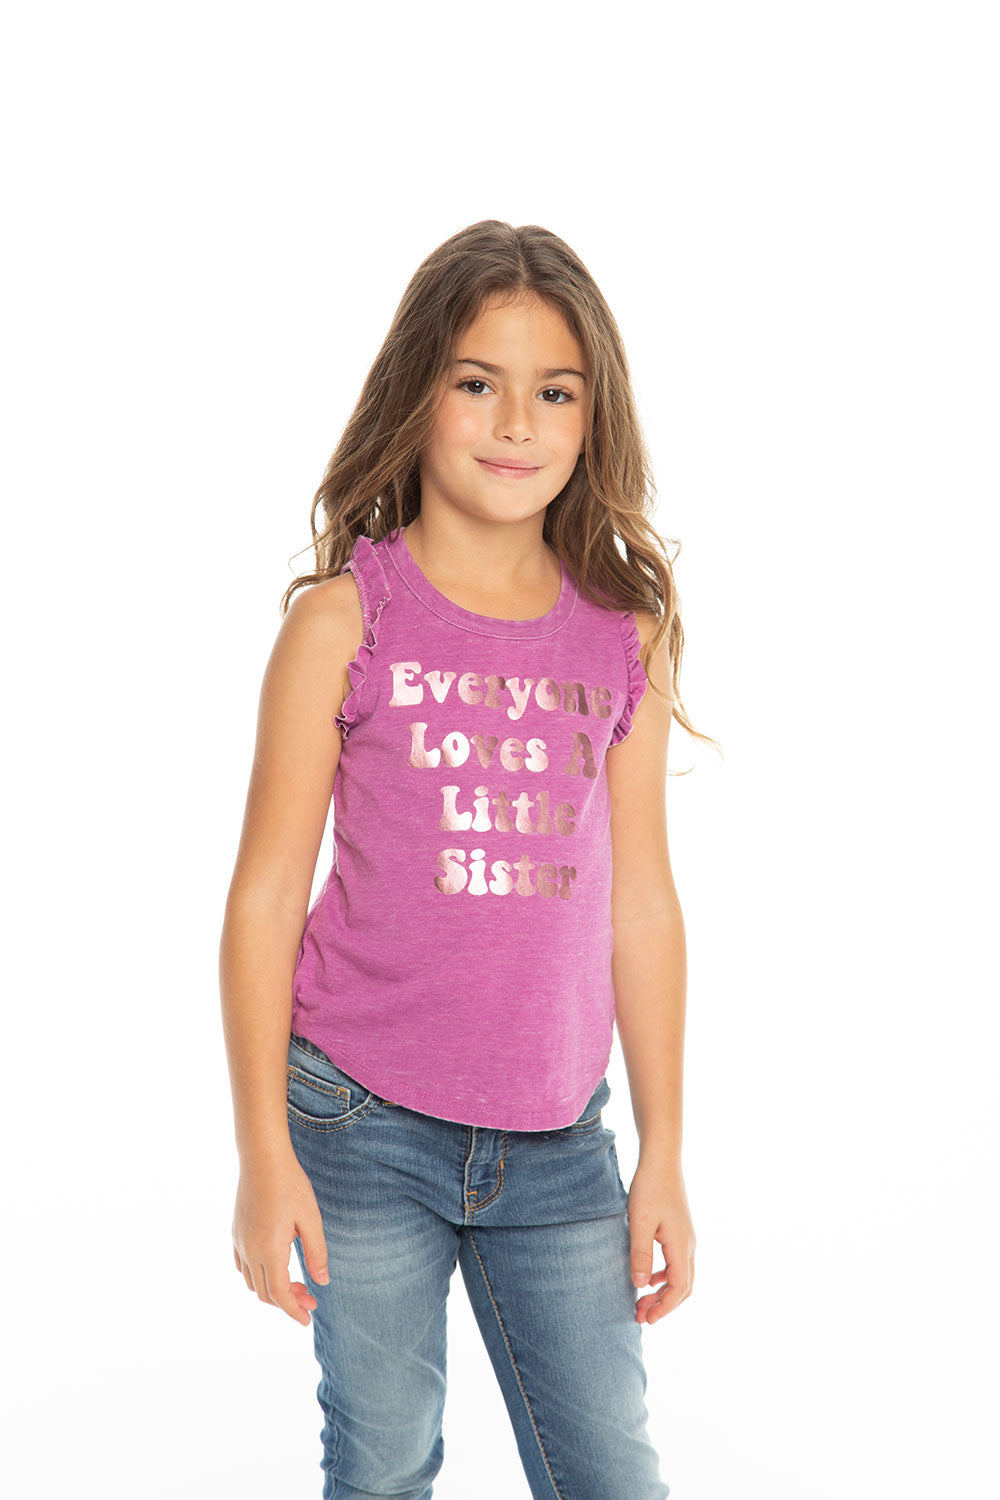 Little Sister Love, Girls, chaserbrand.com,chaser clothing,chaser apparel,chaser los angeles